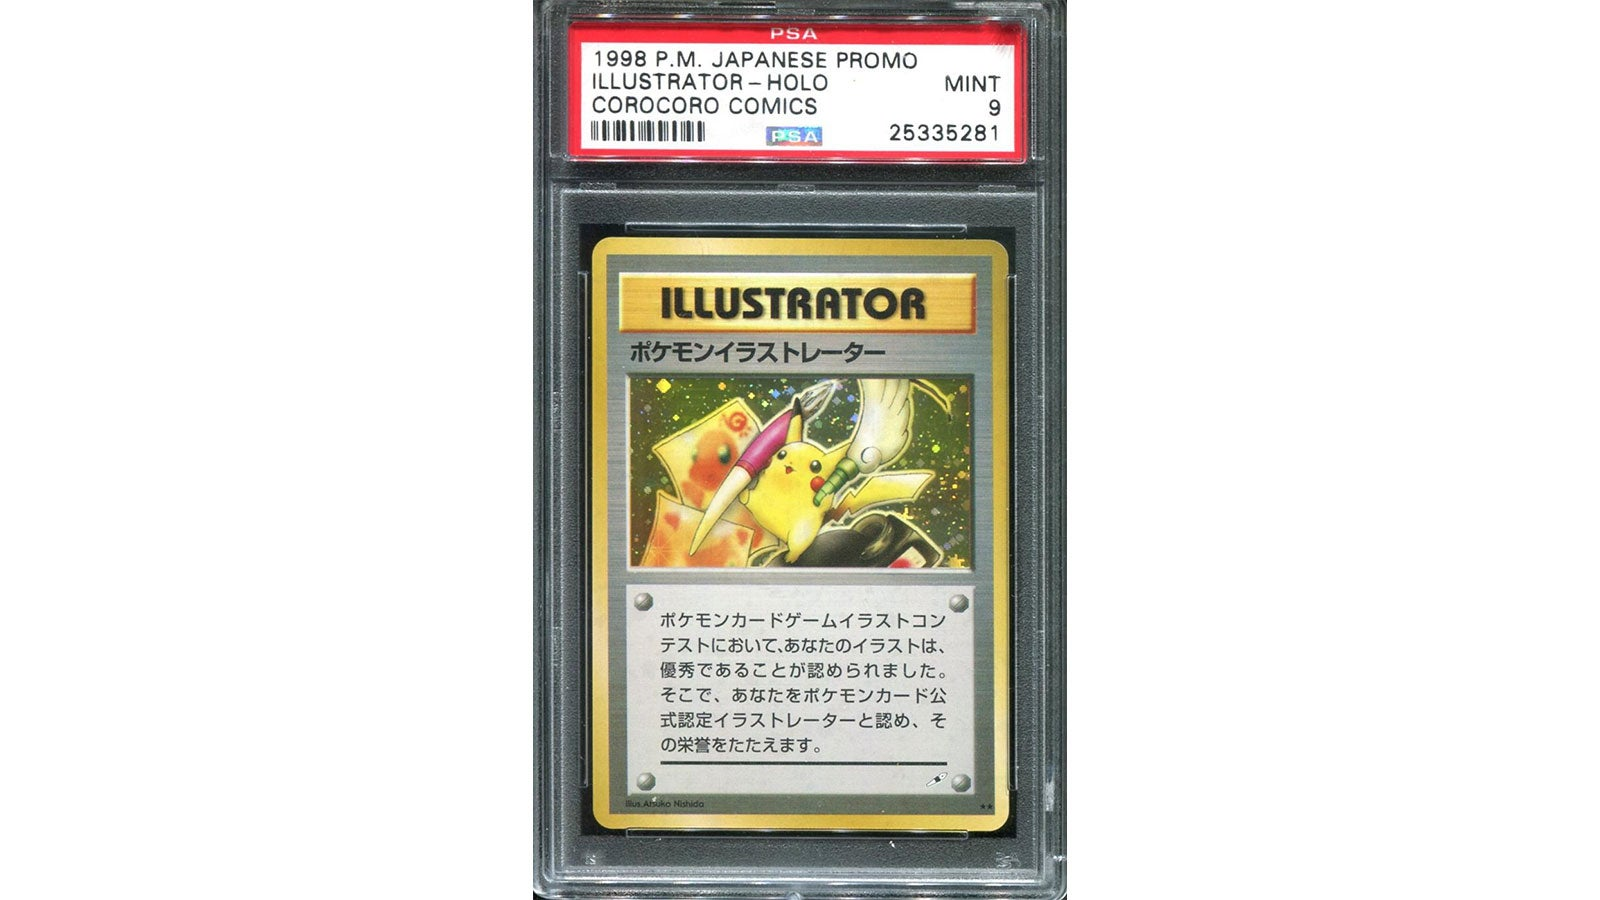 The Most Expensive Pokémon Card On Earth Sold For $285,831